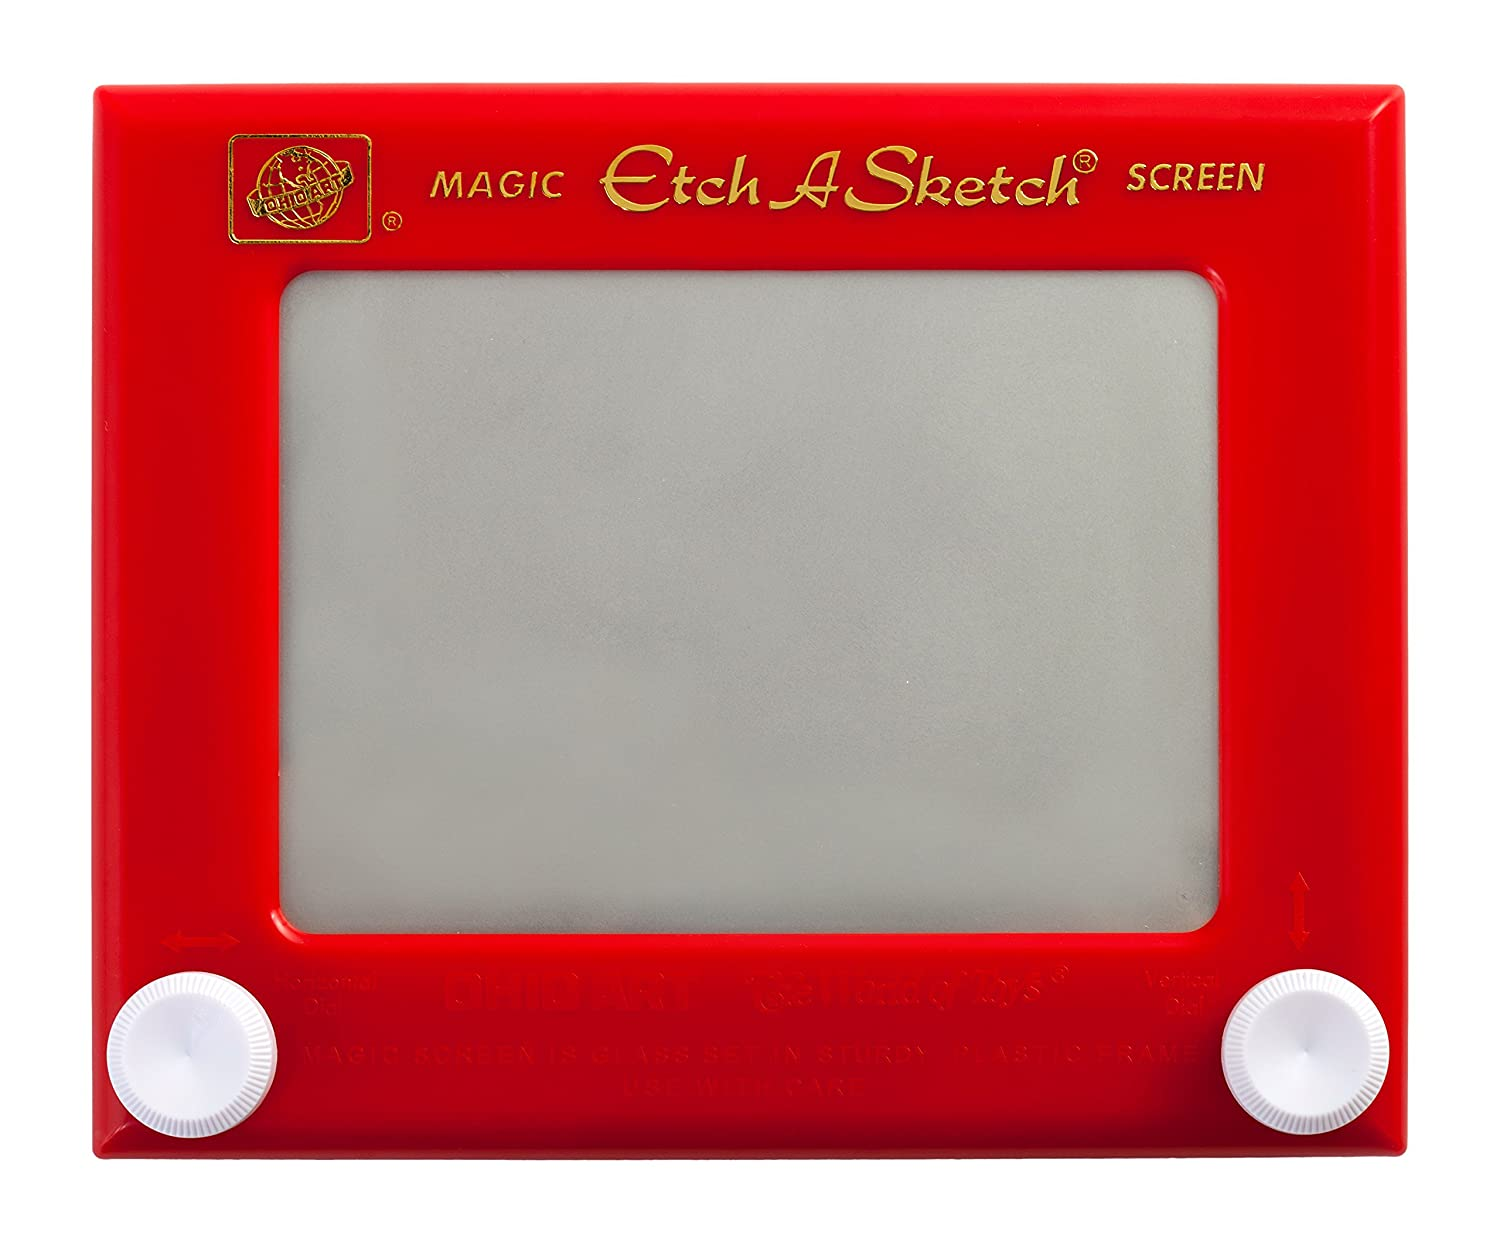 Classic red Etch a Sketch